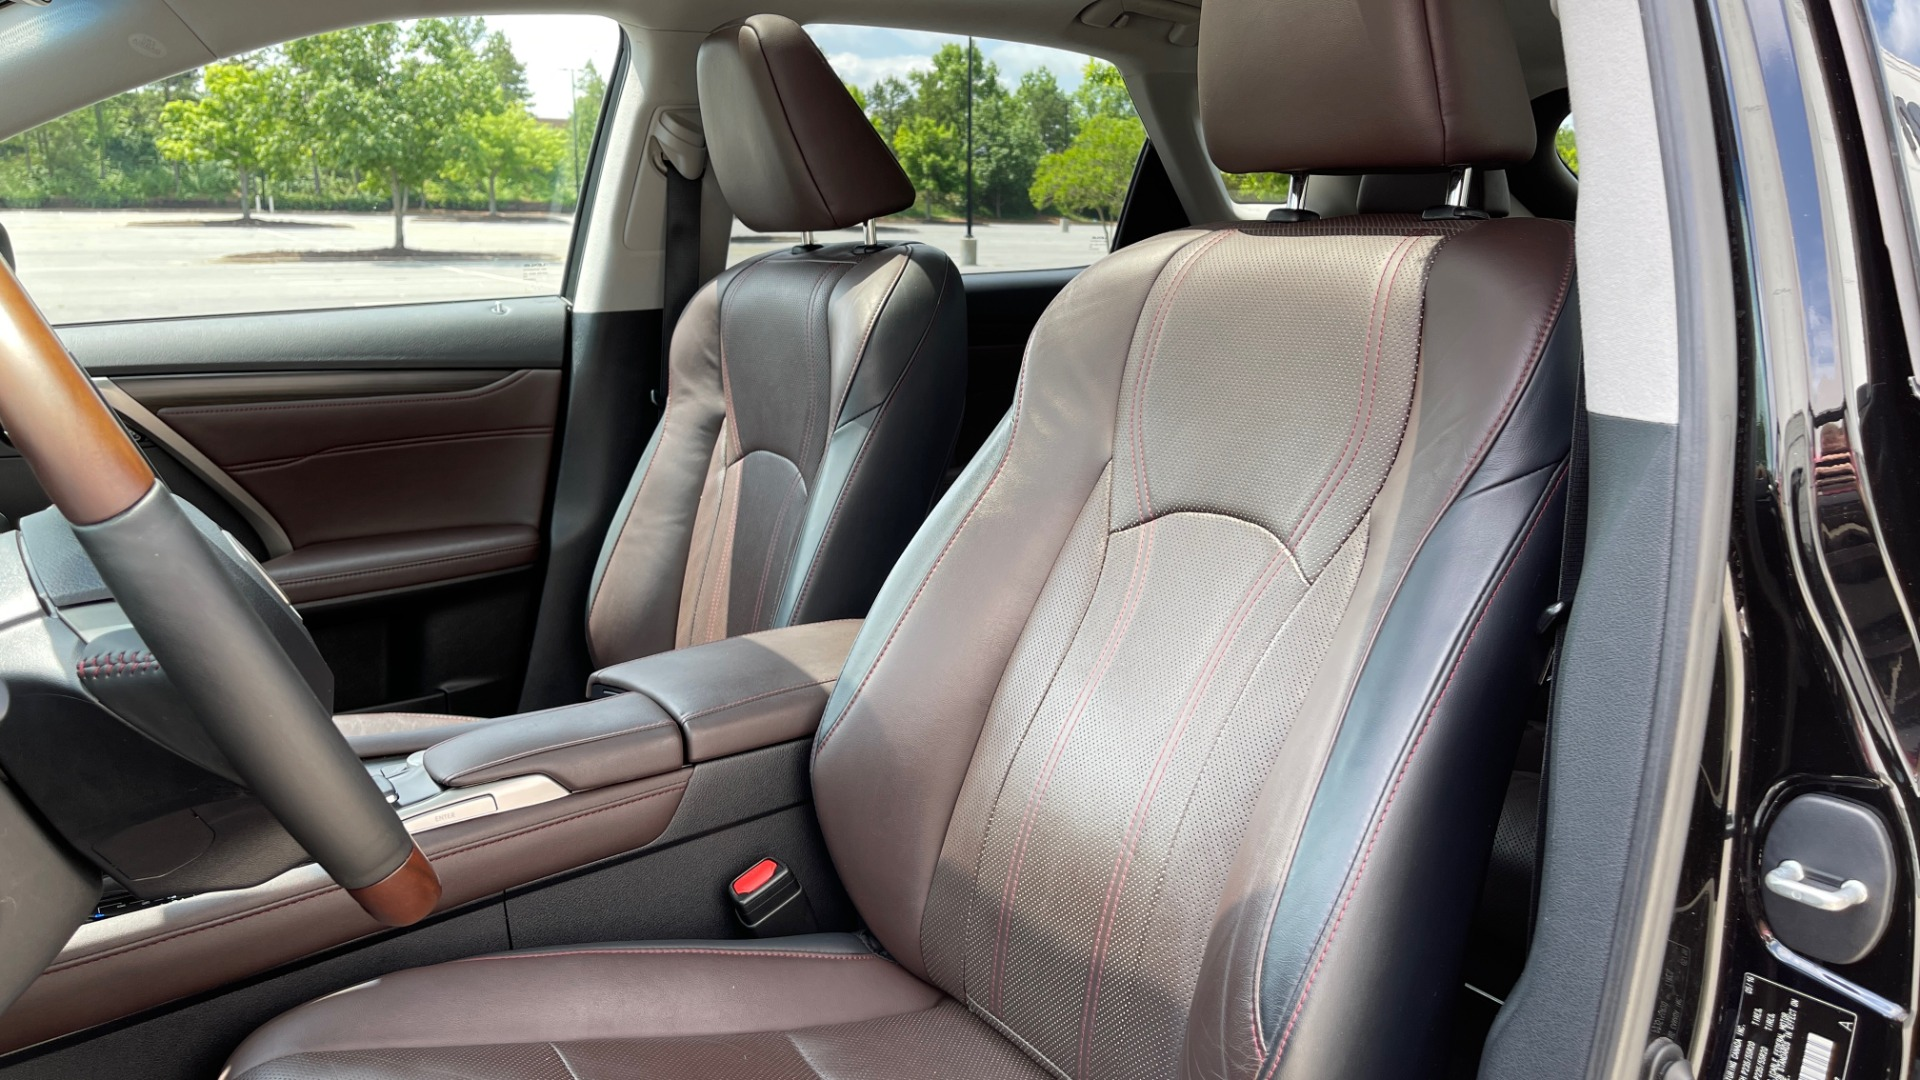 Used 2016 Lexus RX 350 PREMIUM / NAV / SUNROOF / BSM / PARK ASST / REARVIEW for sale $29,495 at Formula Imports in Charlotte NC 28227 50